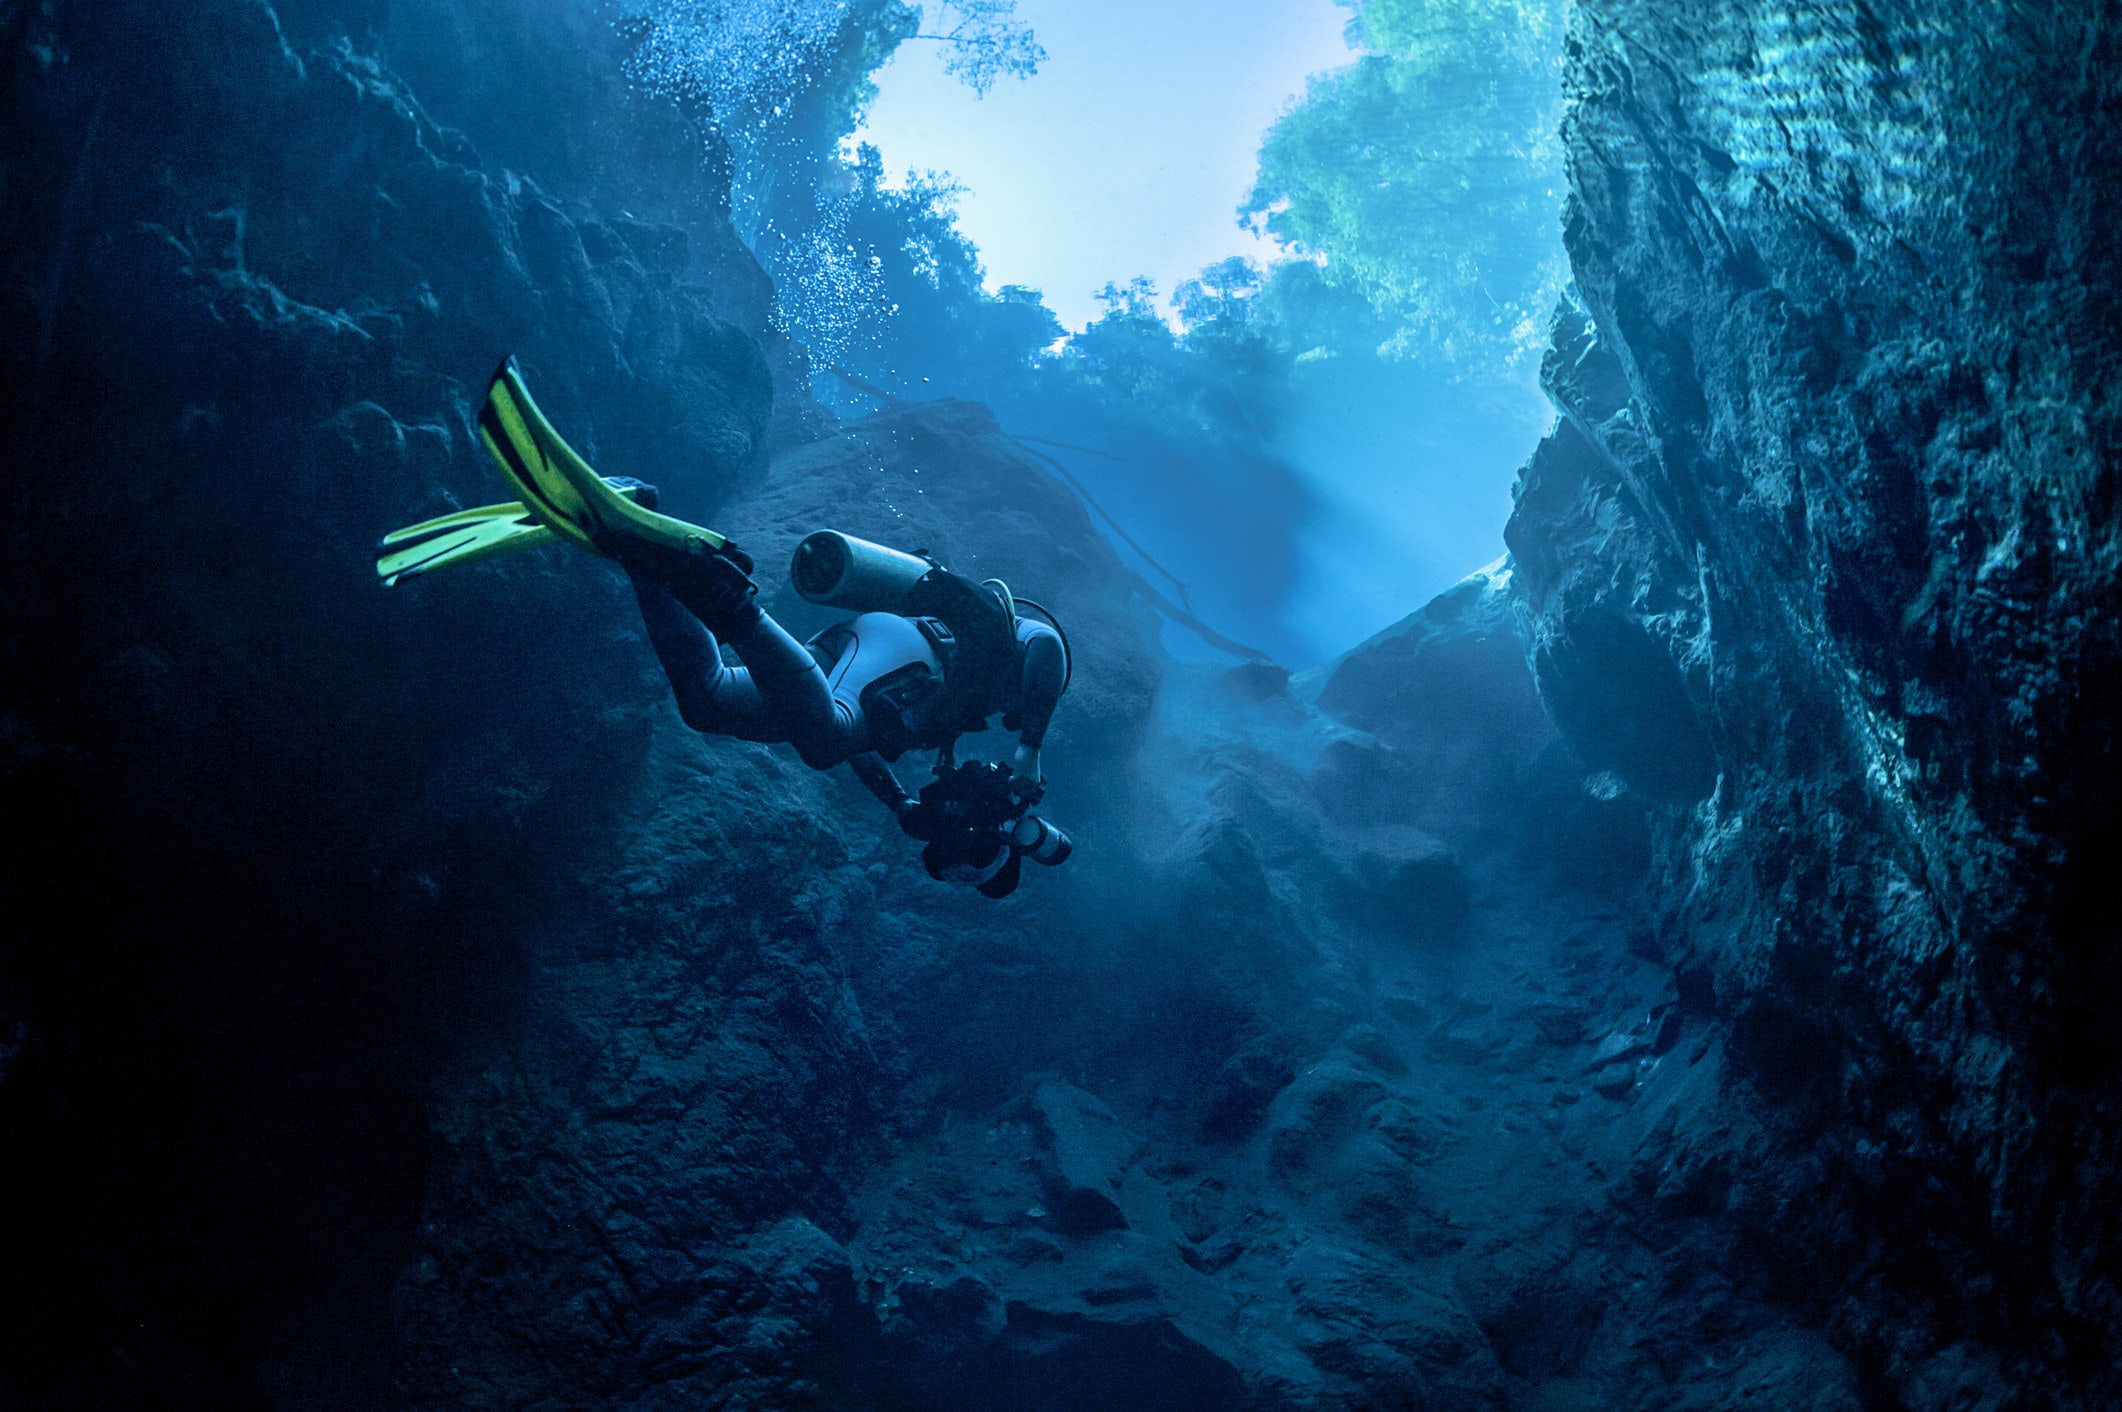 A dive under water